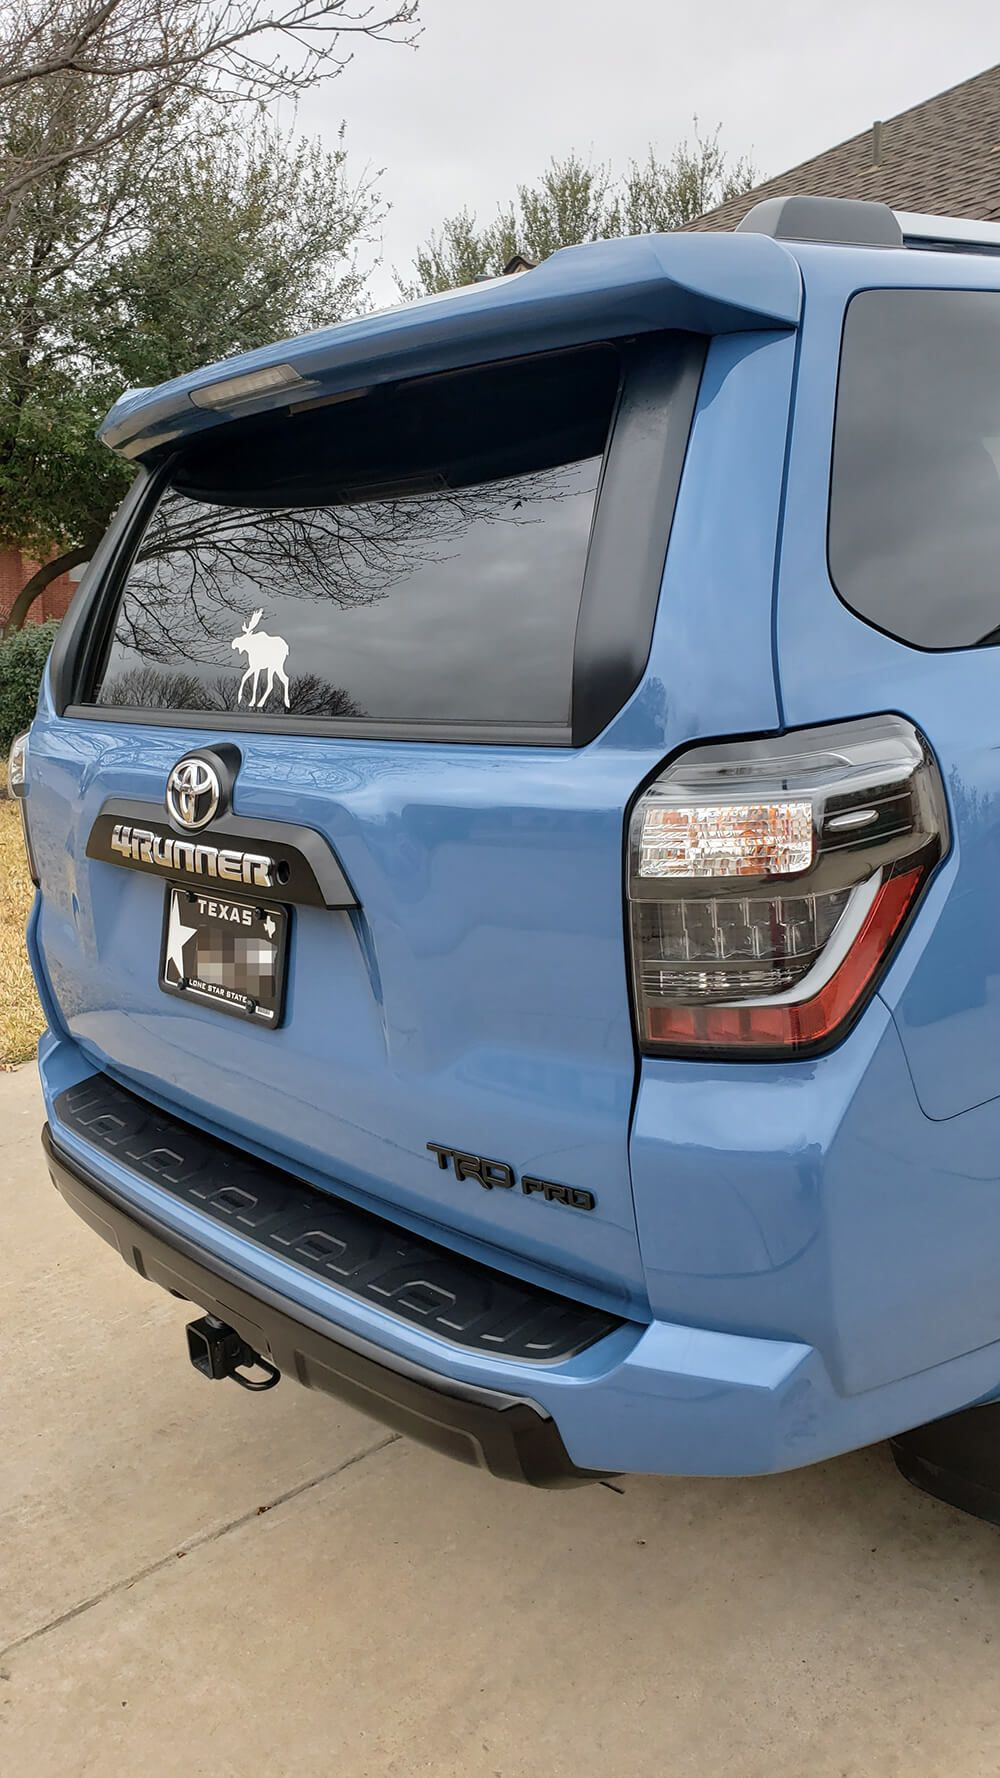 Blacked Out Tail Lights On 5th Gen 4runner By Unique Style Racing 4runner Tail Light Unique Style